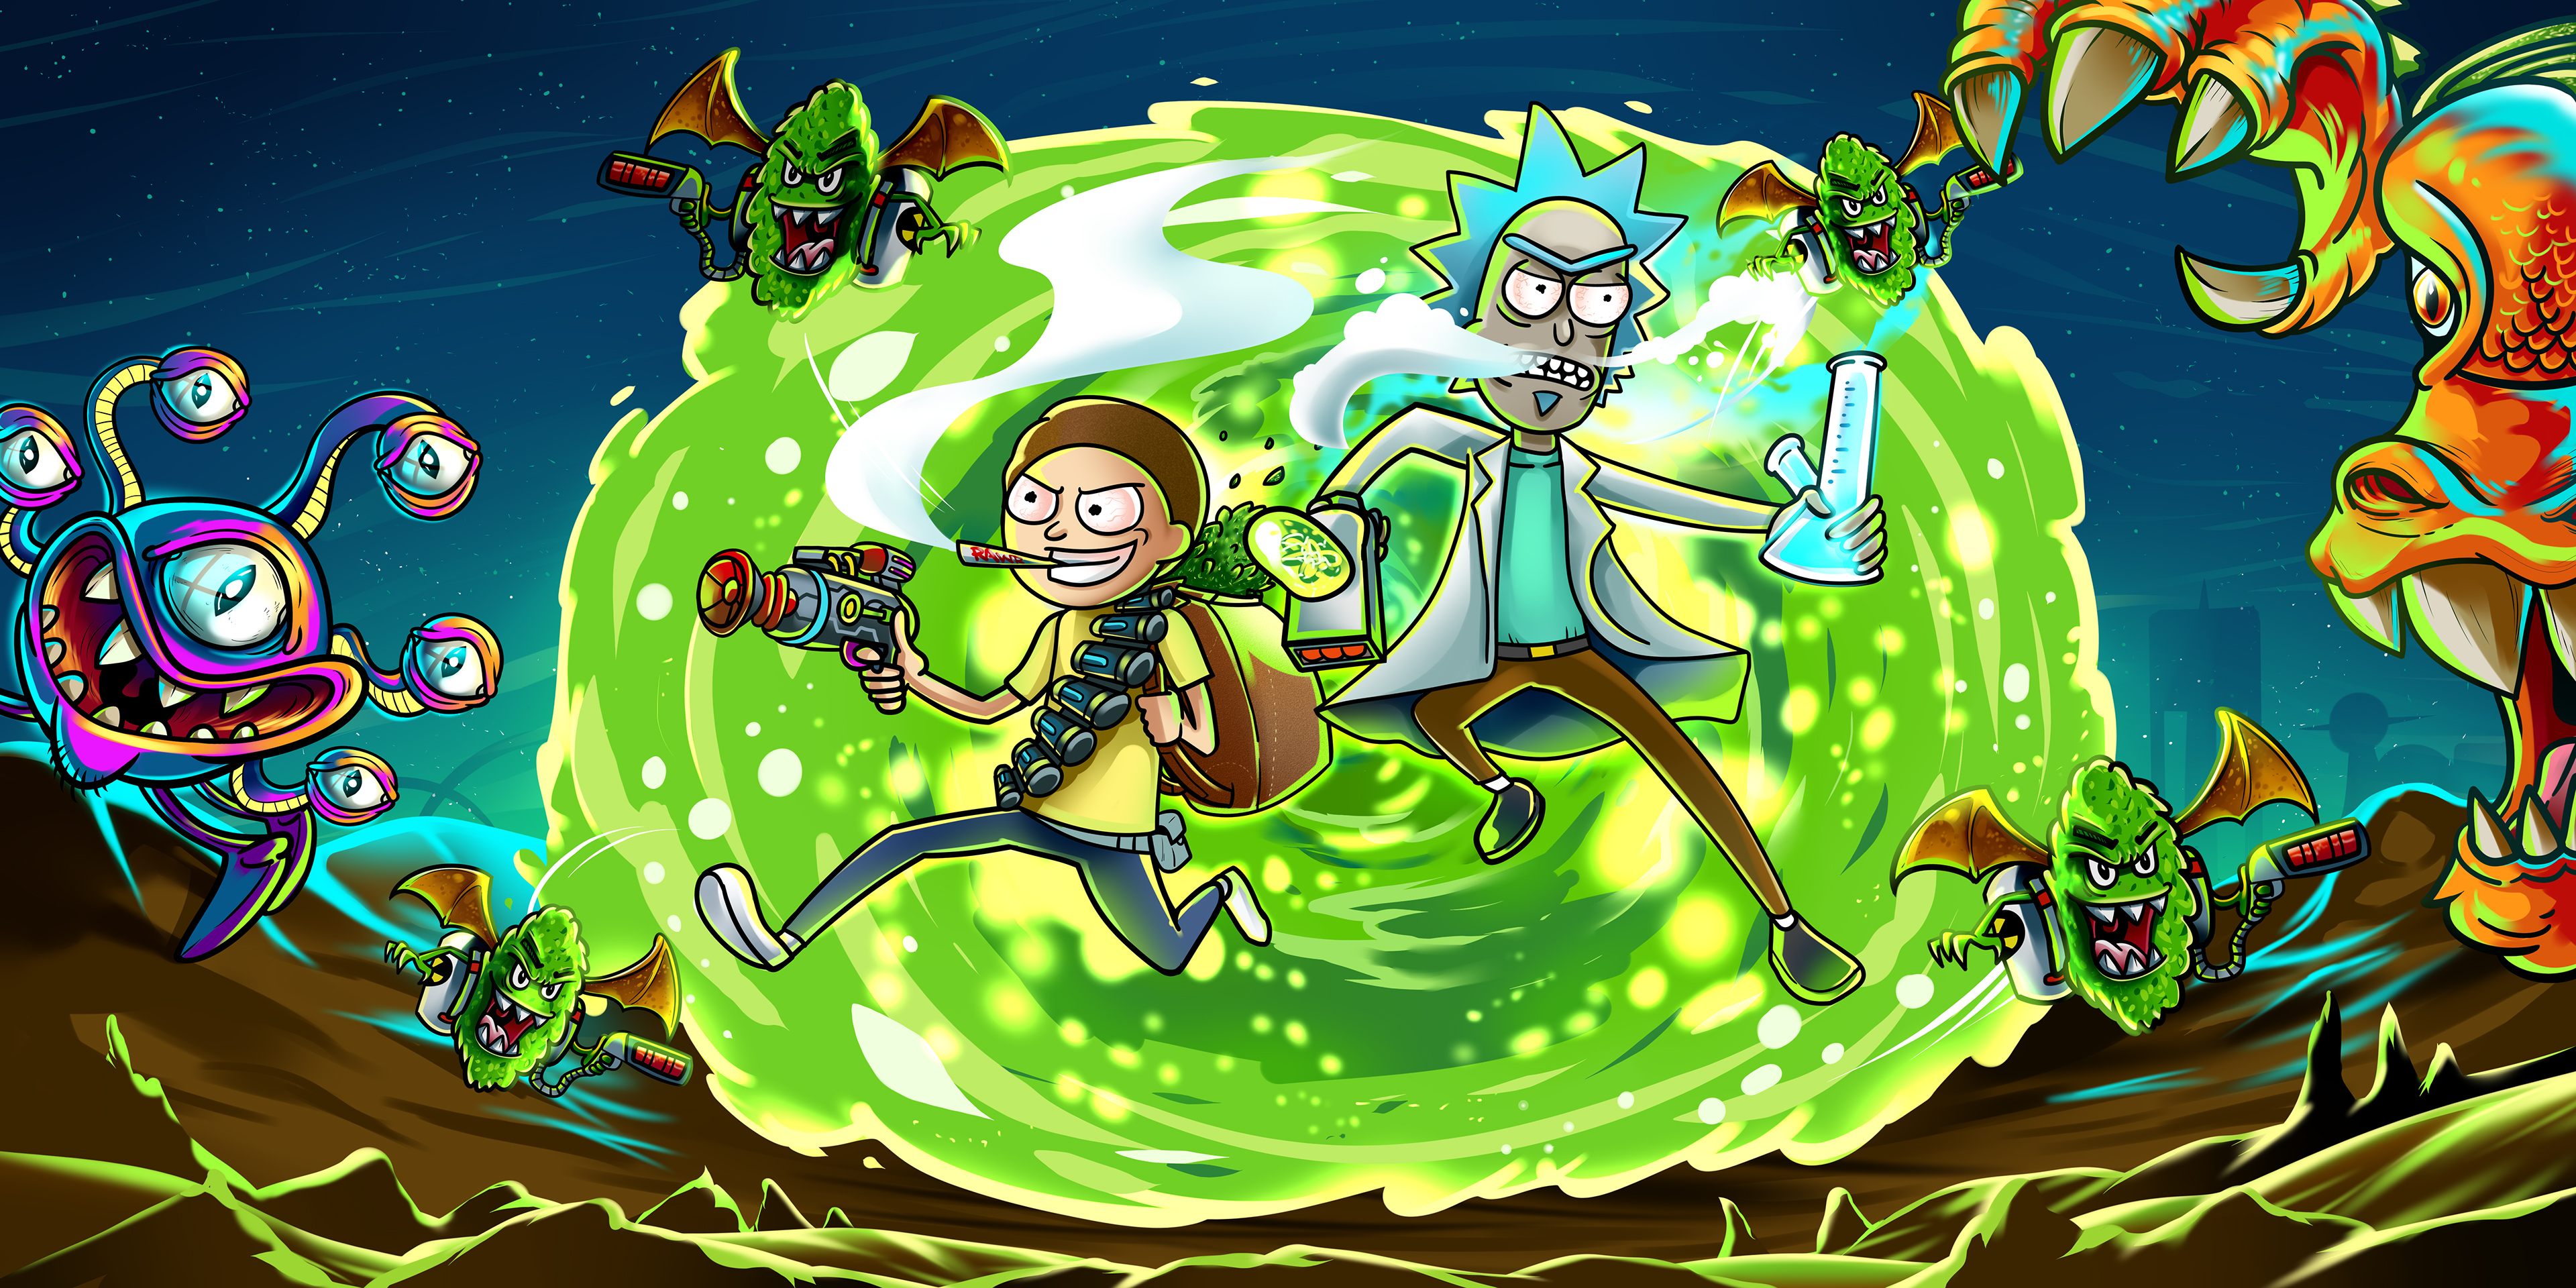 Rick And Morty In Another Dimension Illustration Hd Tv Shows 4k